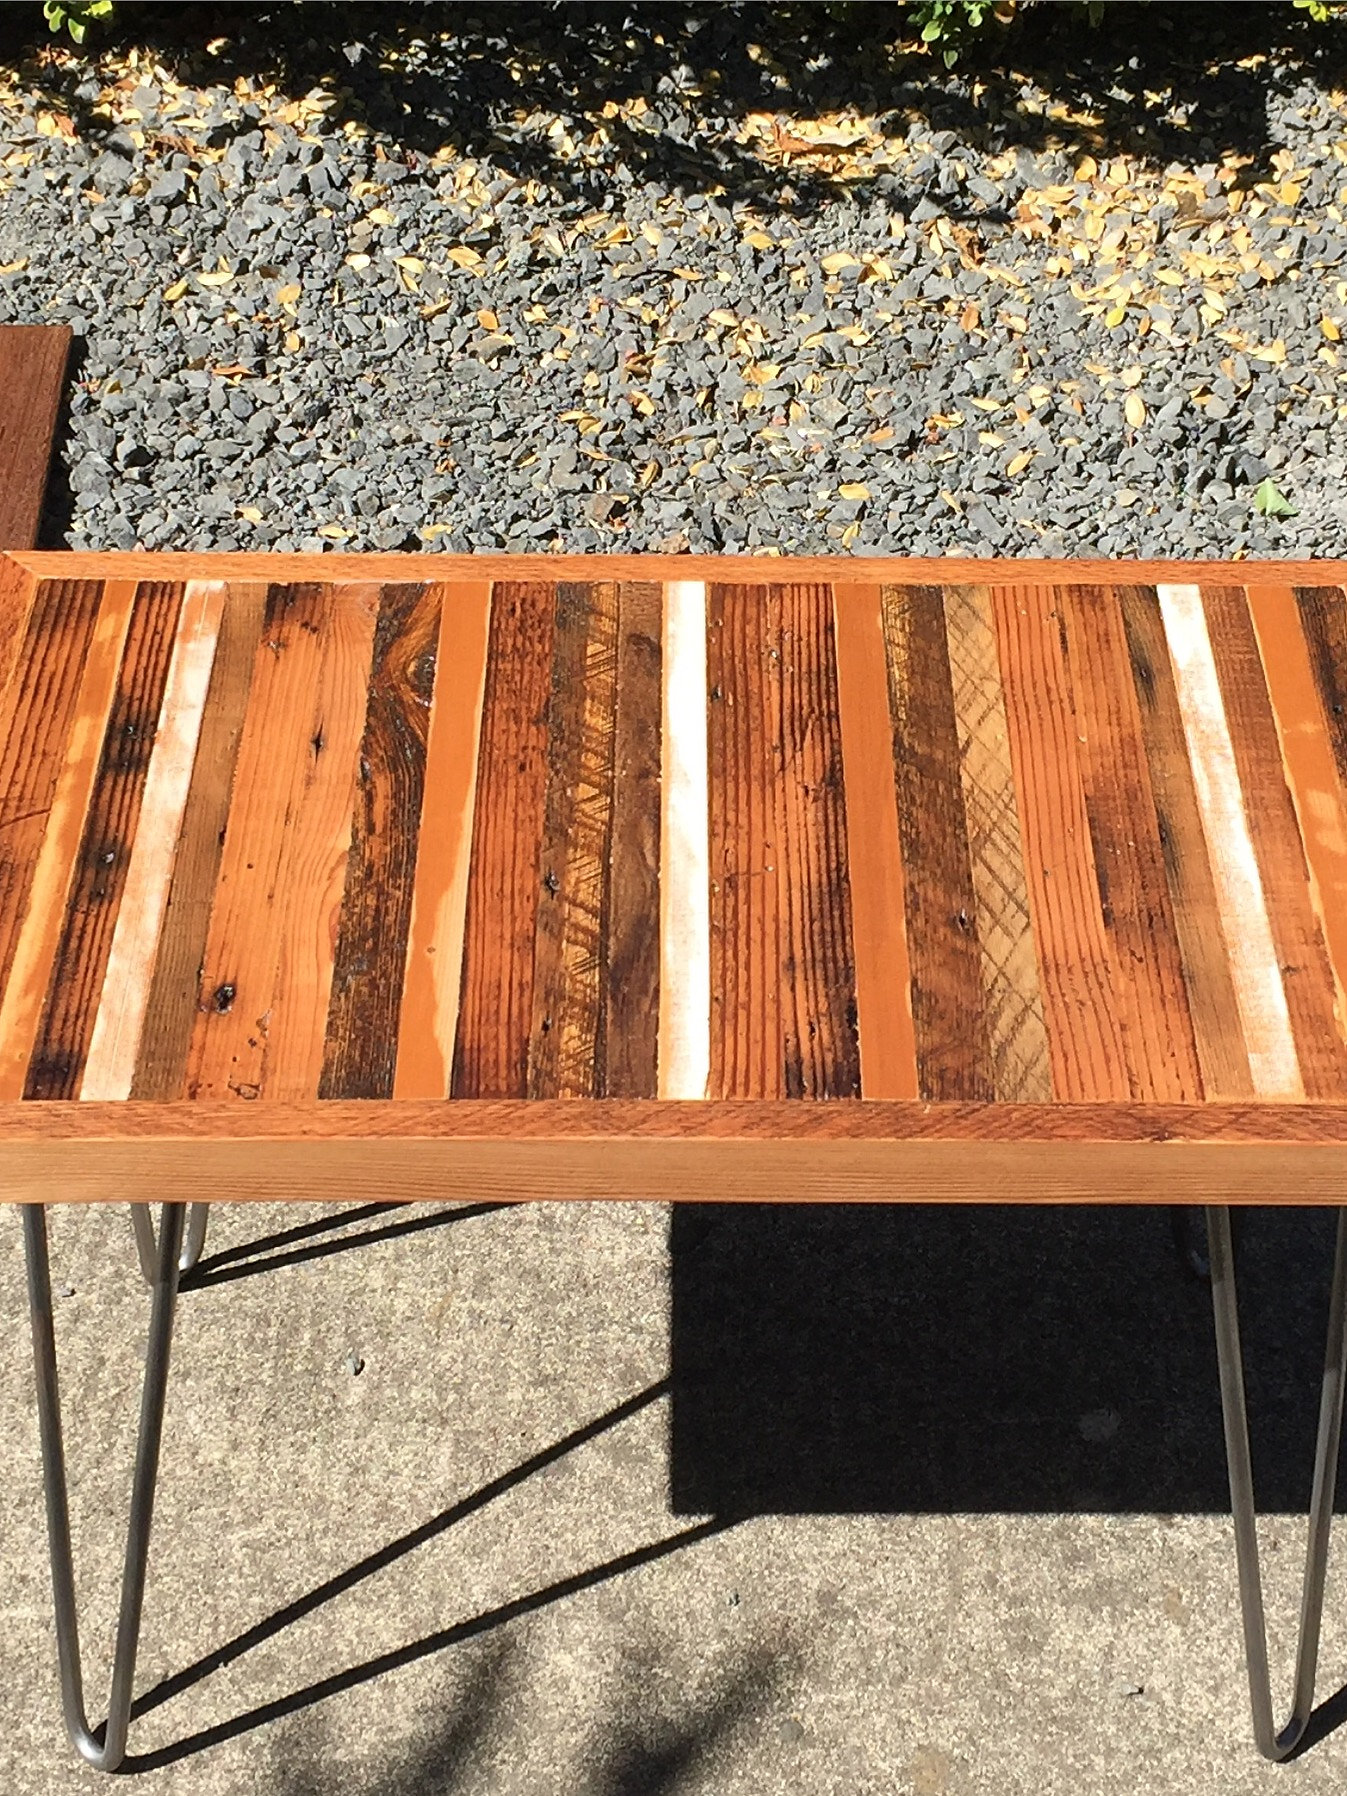 The Regrainery Reclaimed Woodworking and Furniture